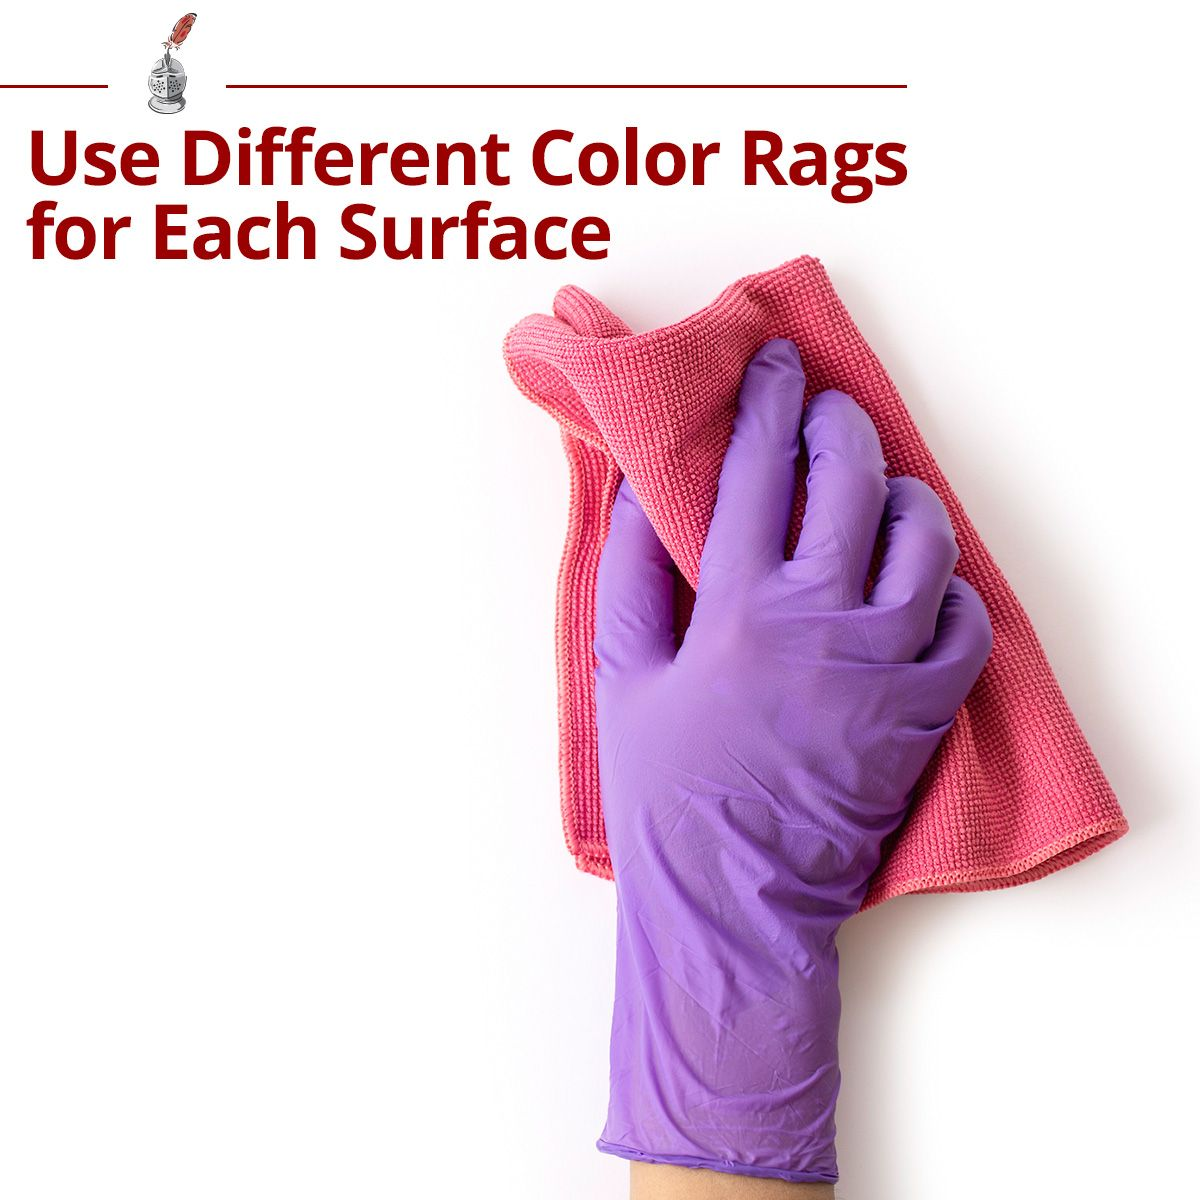 Use Different Color Rags for Each Surface